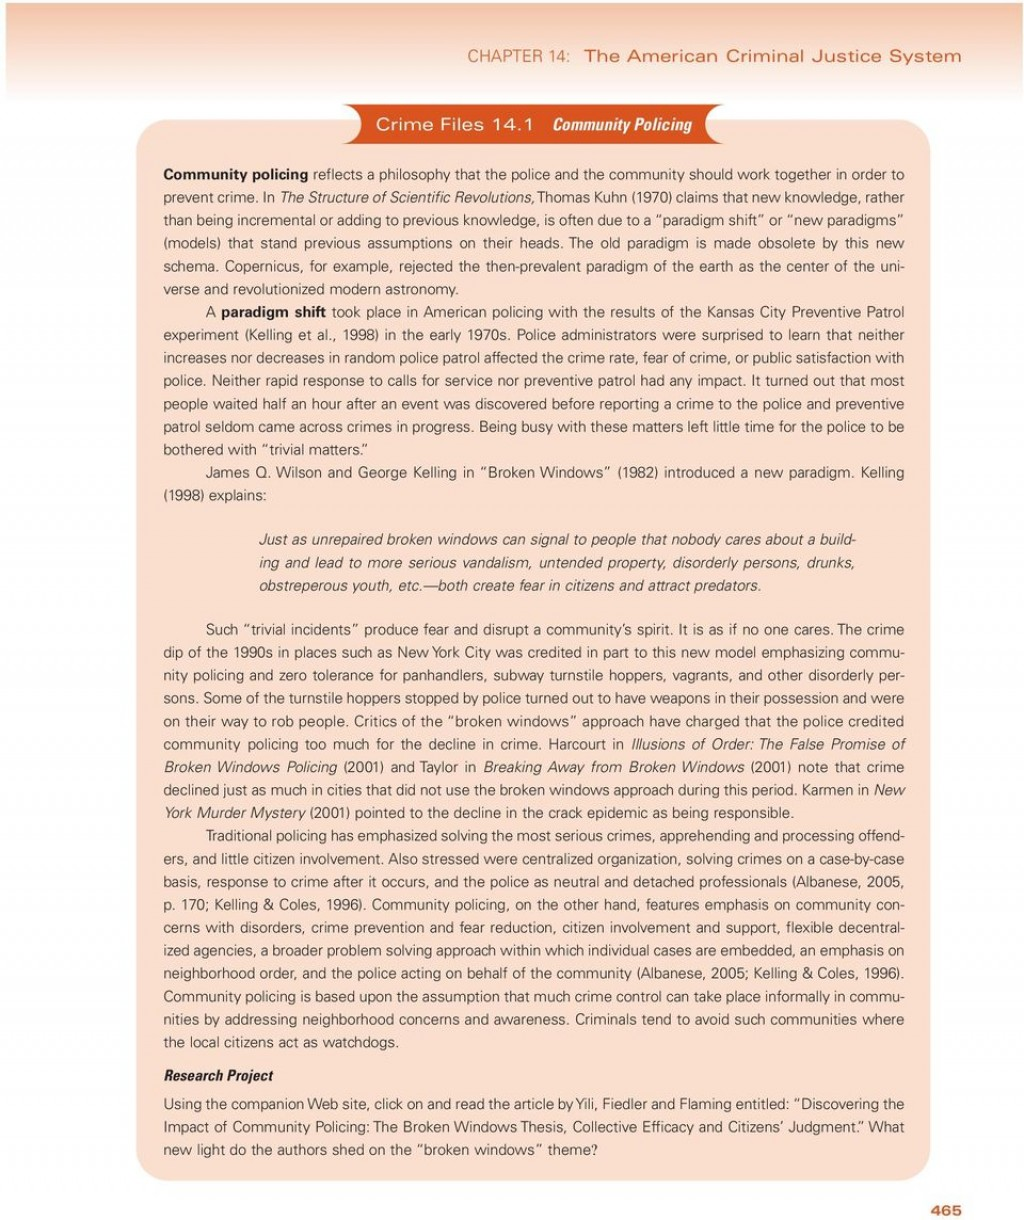 022 Page 5 Criminal Justice Researchs Free Unforgettable Research Papers Large